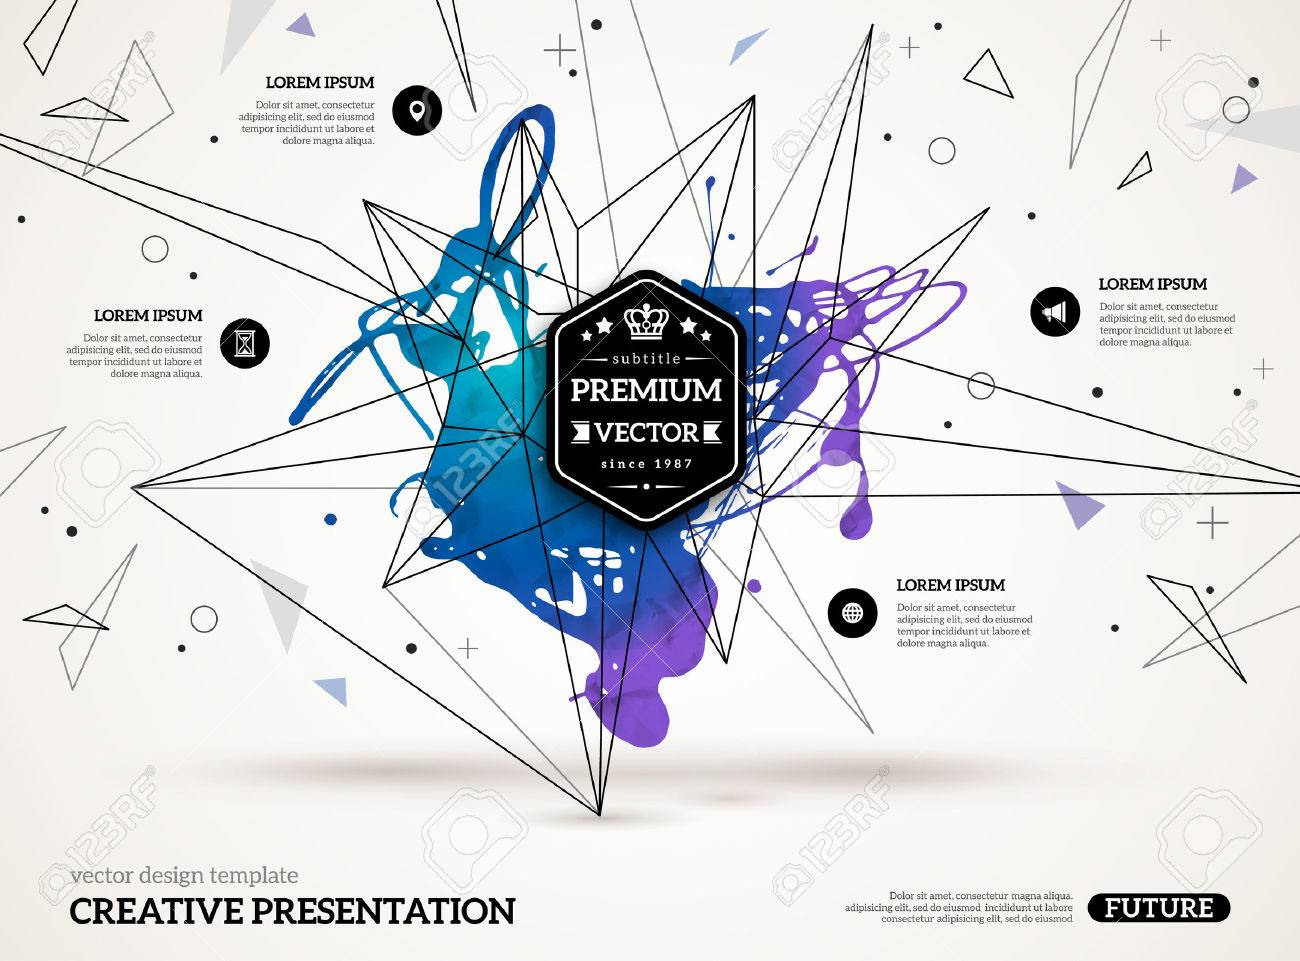 3D abstract background with paint stain and geometric shapes. Vector design layout for business presentations, flyers, posters. Scientific future technology background. Stock Vector - 44928785